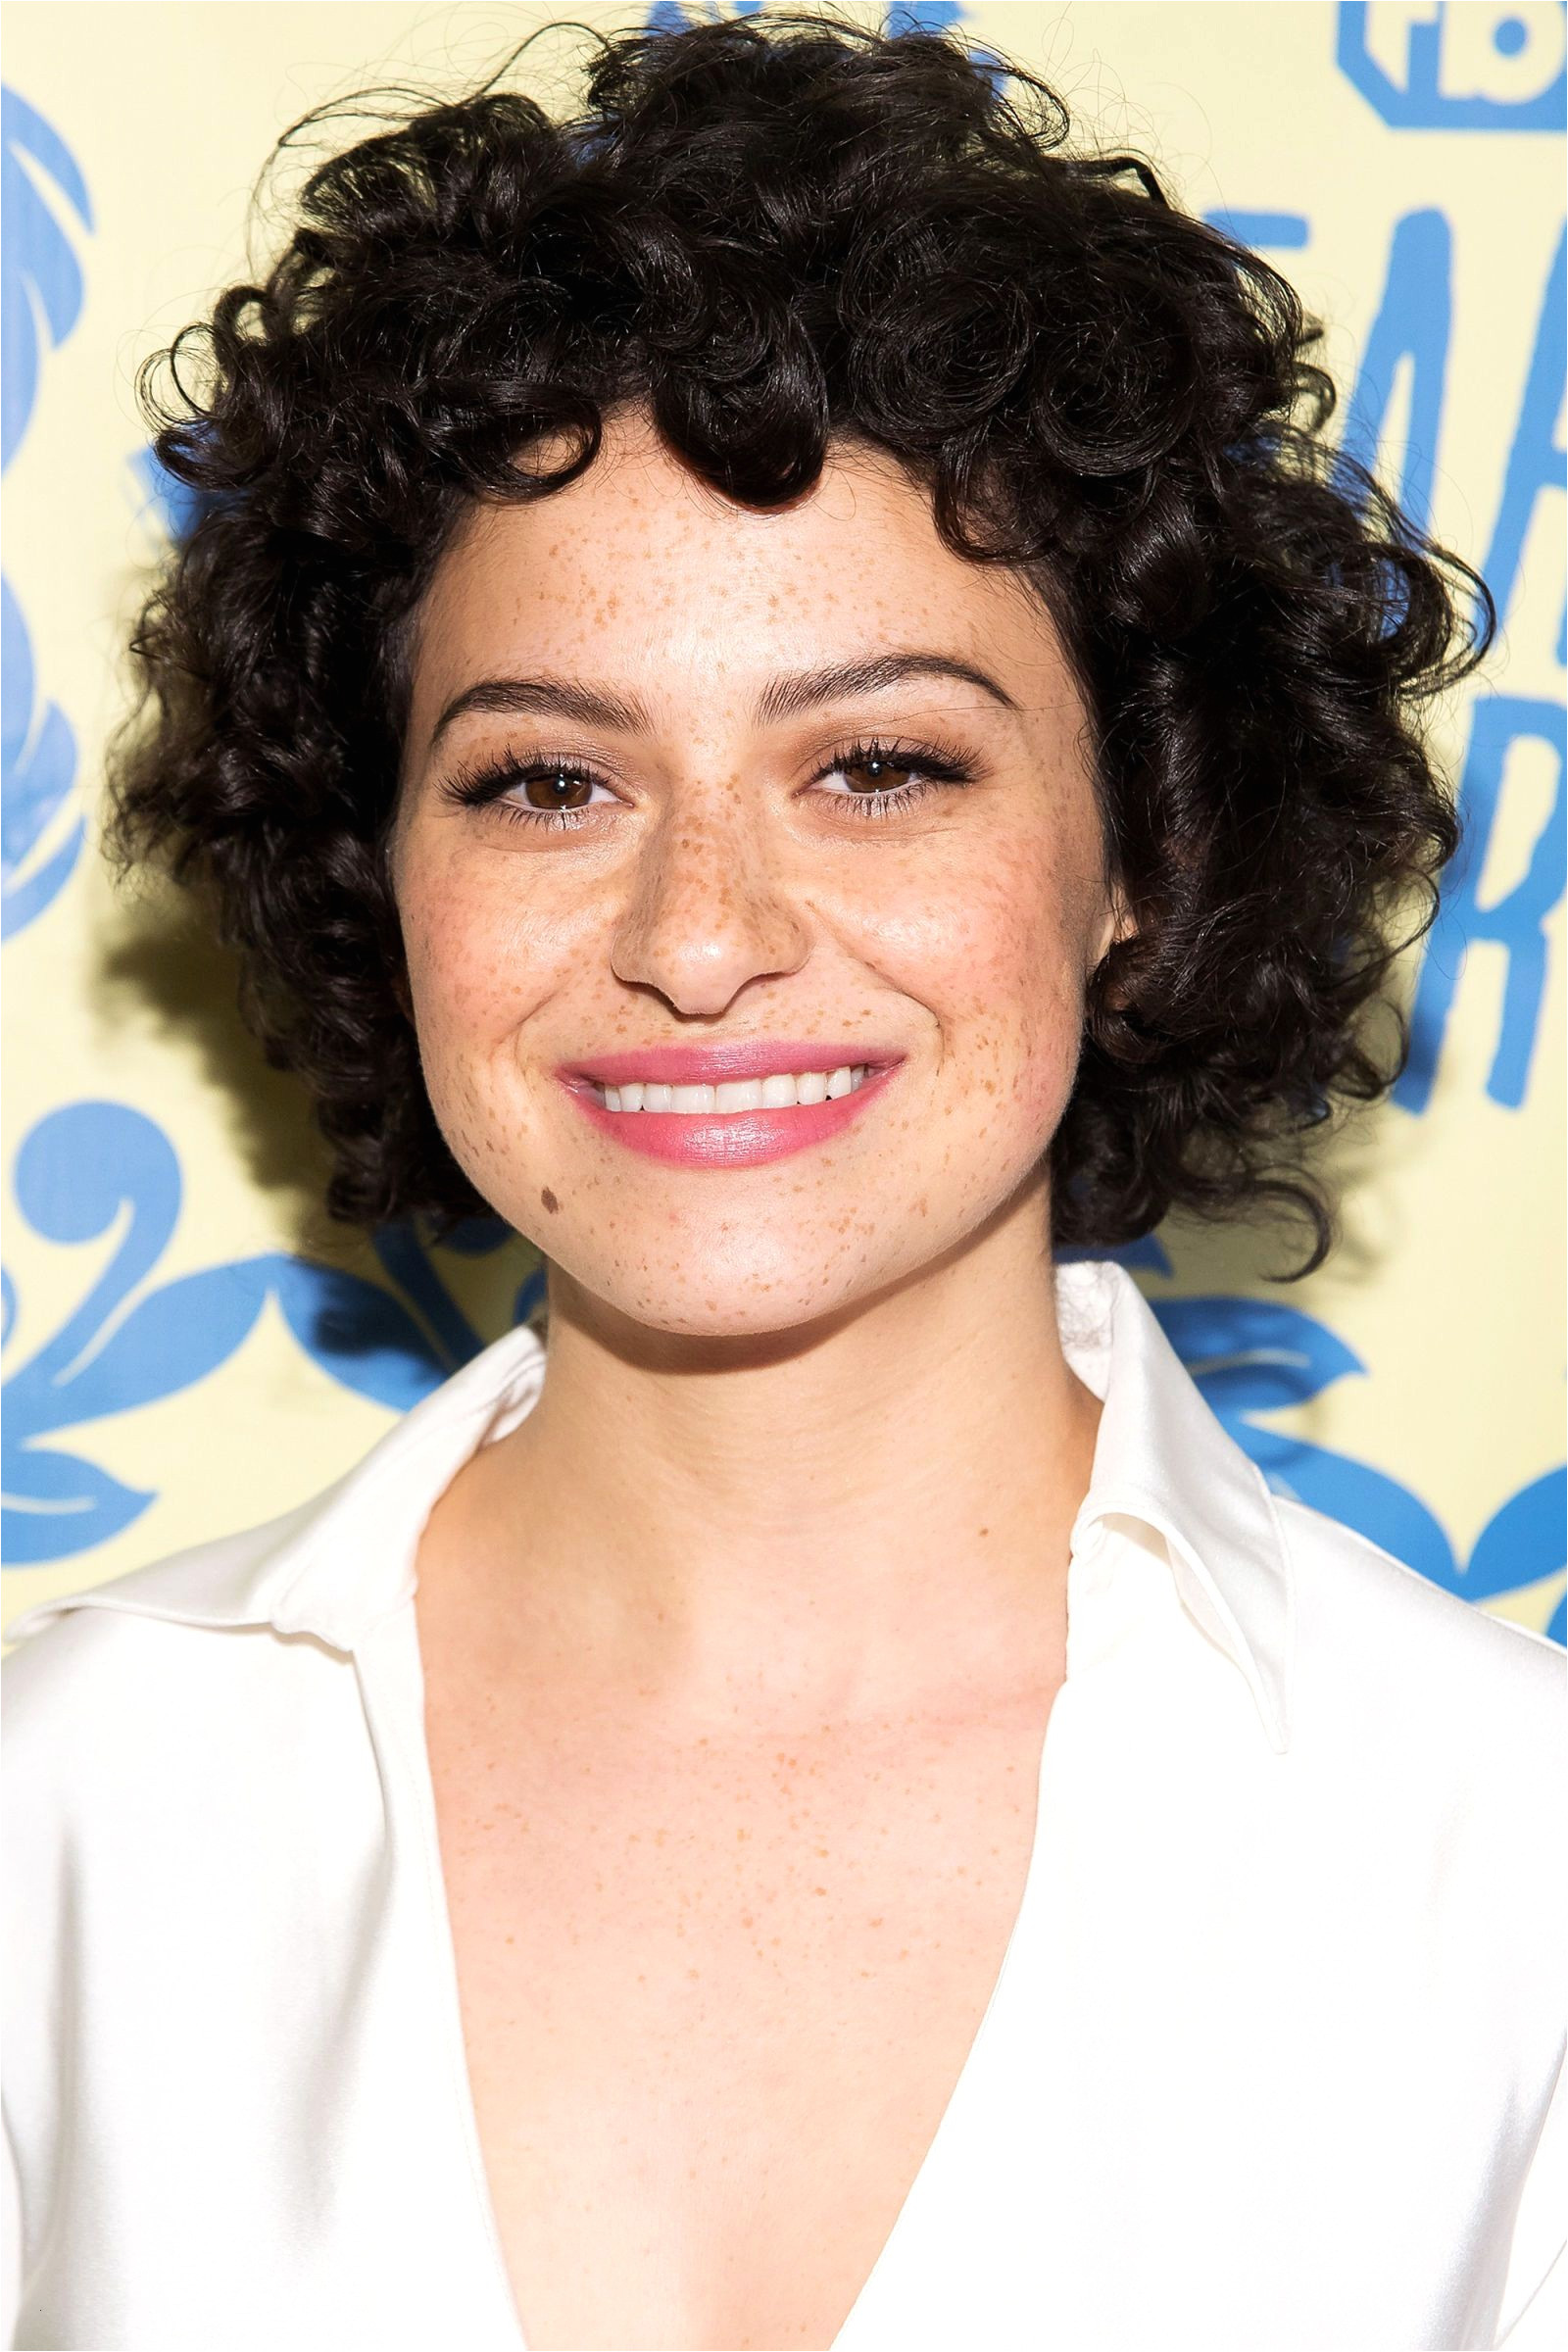 Curly Hairstyles for Medium Hair Inspirational Names Hairstyles New Very Curly Hairstyles Fresh Curly Hair 0d